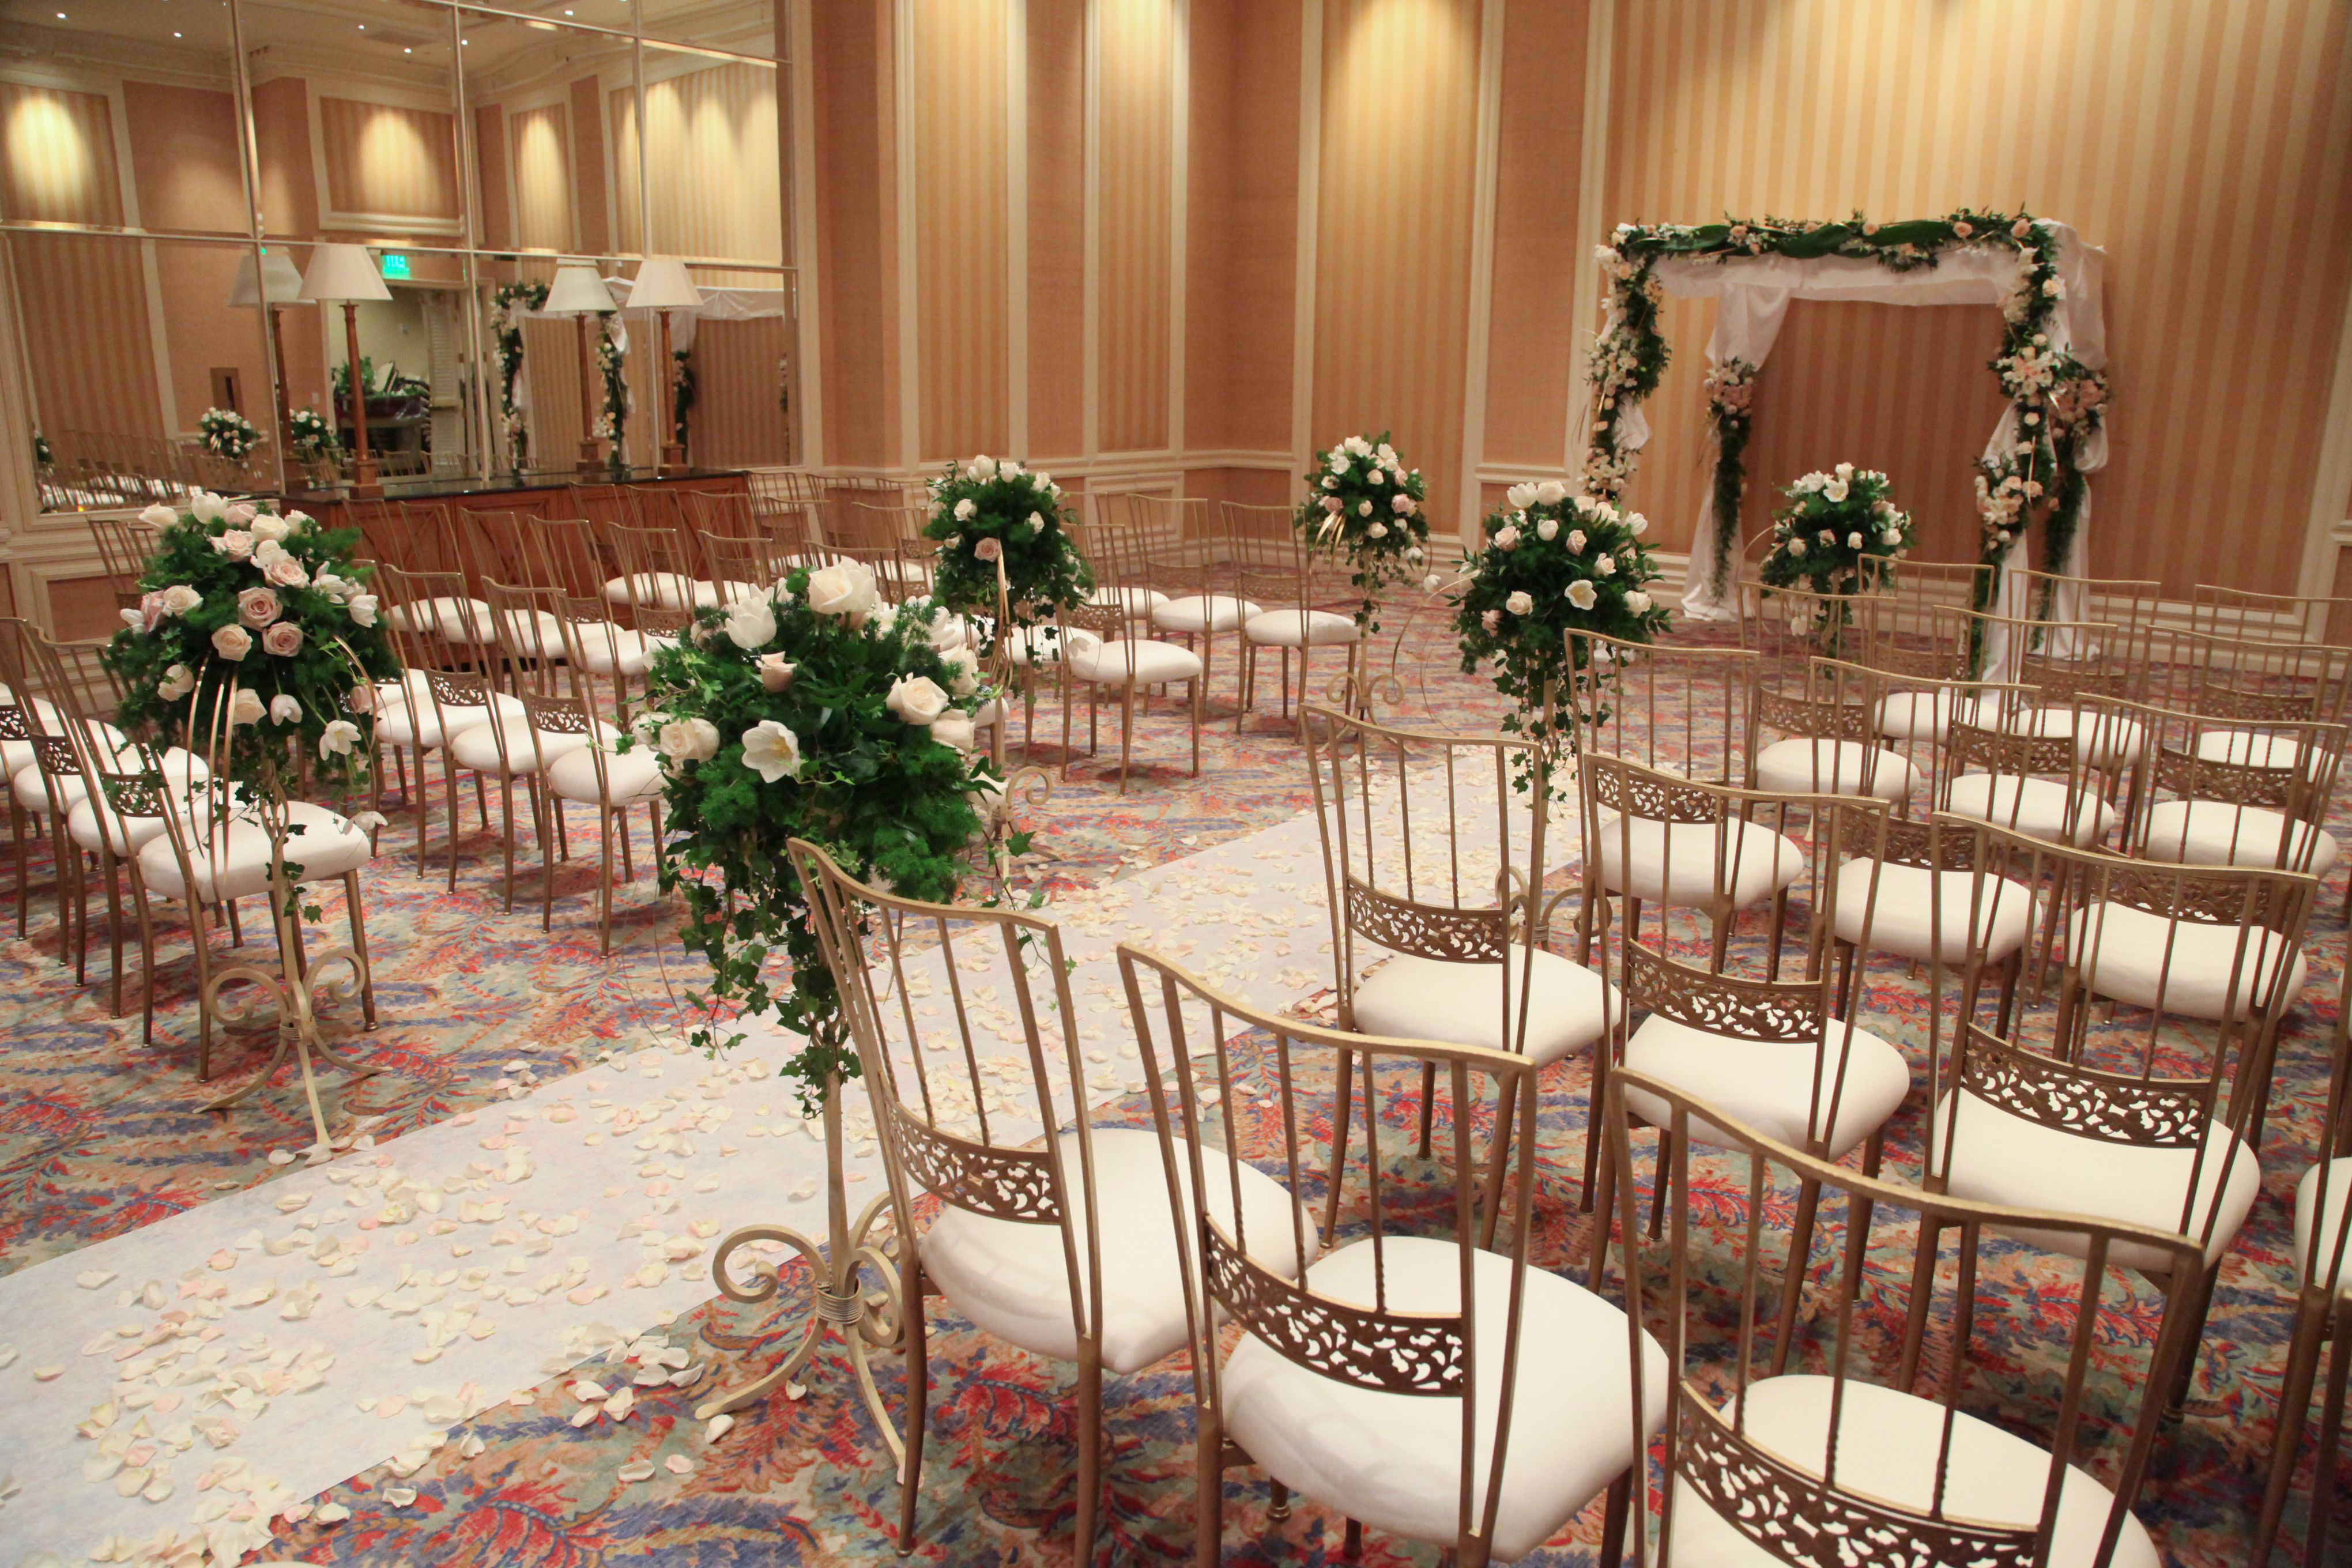 If A Traditional Wedding Venue In Las Vegas Is What You Seek The Wedding Chapel At The Mirage I Las Vegas Wedding Inspiration Las Vegas Weddings Vegas Wedding